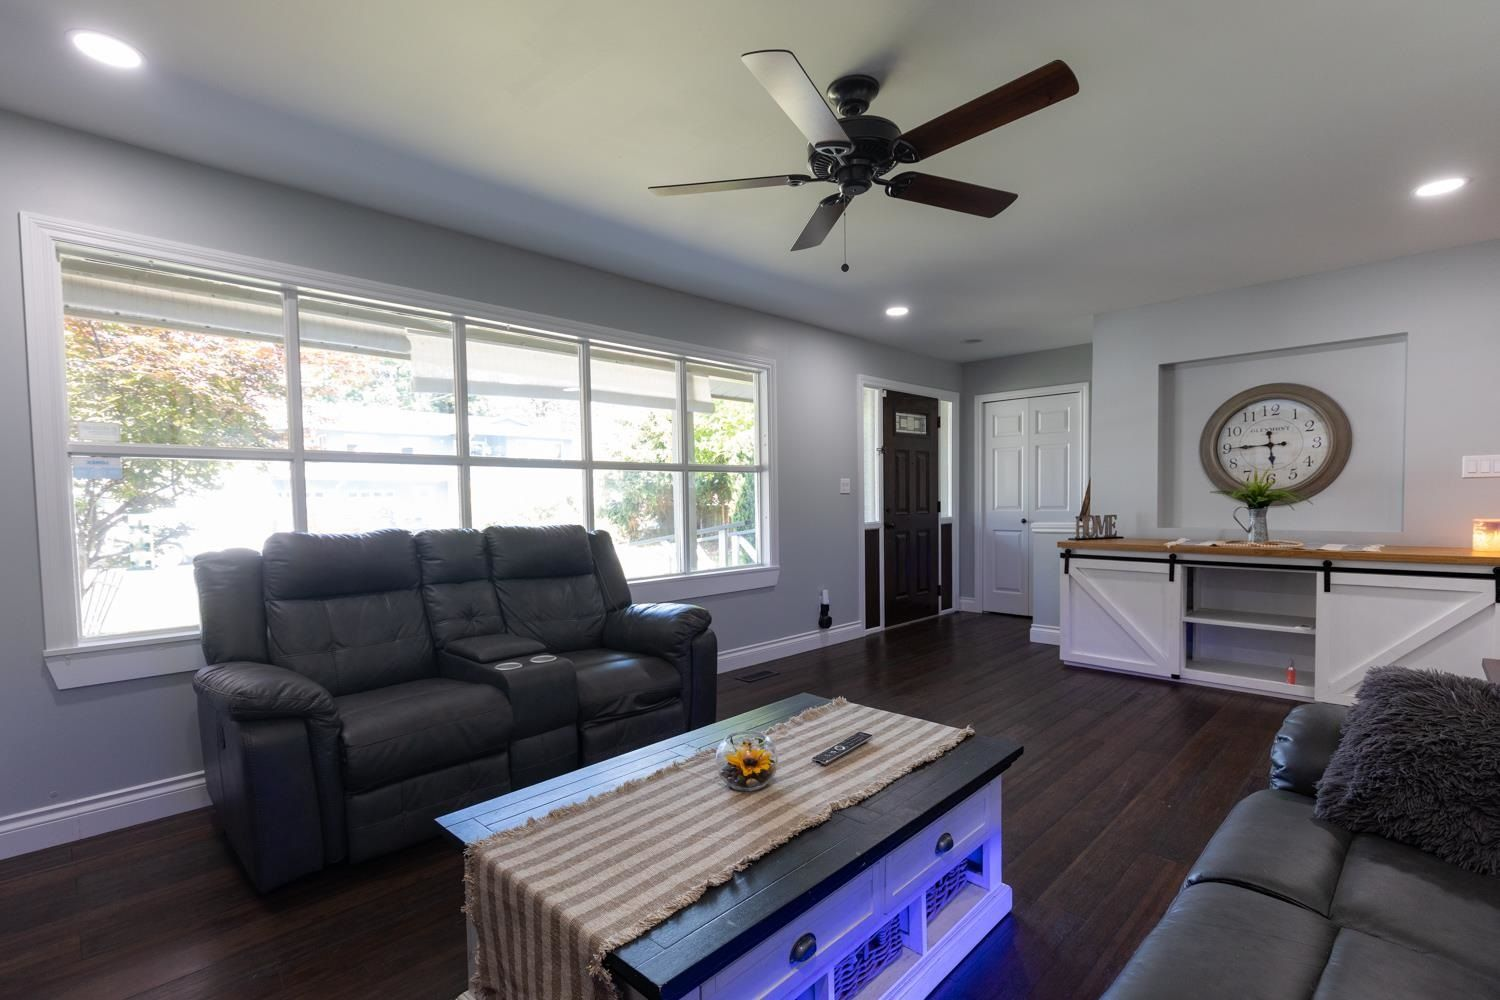 Photo 3: Photos: 2246 BEDFORD Place in Abbotsford: Abbotsford West House for sale : MLS®# R2602902